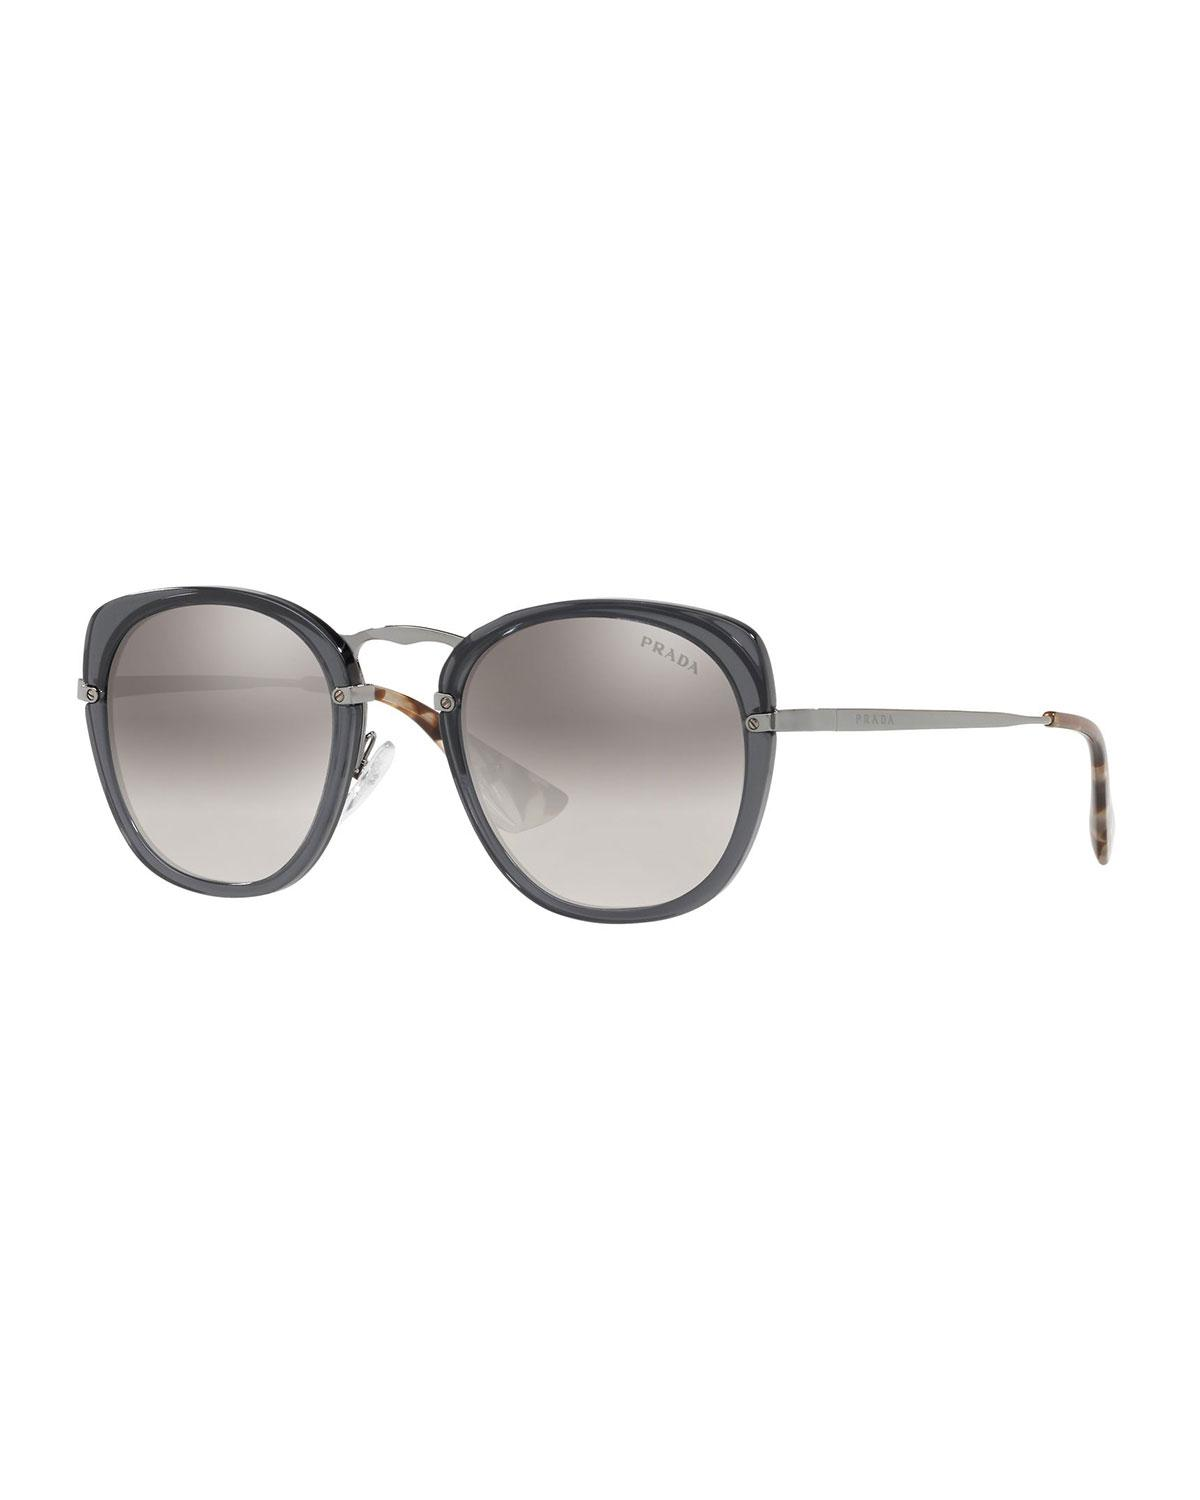 cbe4e5a081 Prada - Gray Mirrored Metal Butterfly Sunglasses - Lyst. View fullscreen